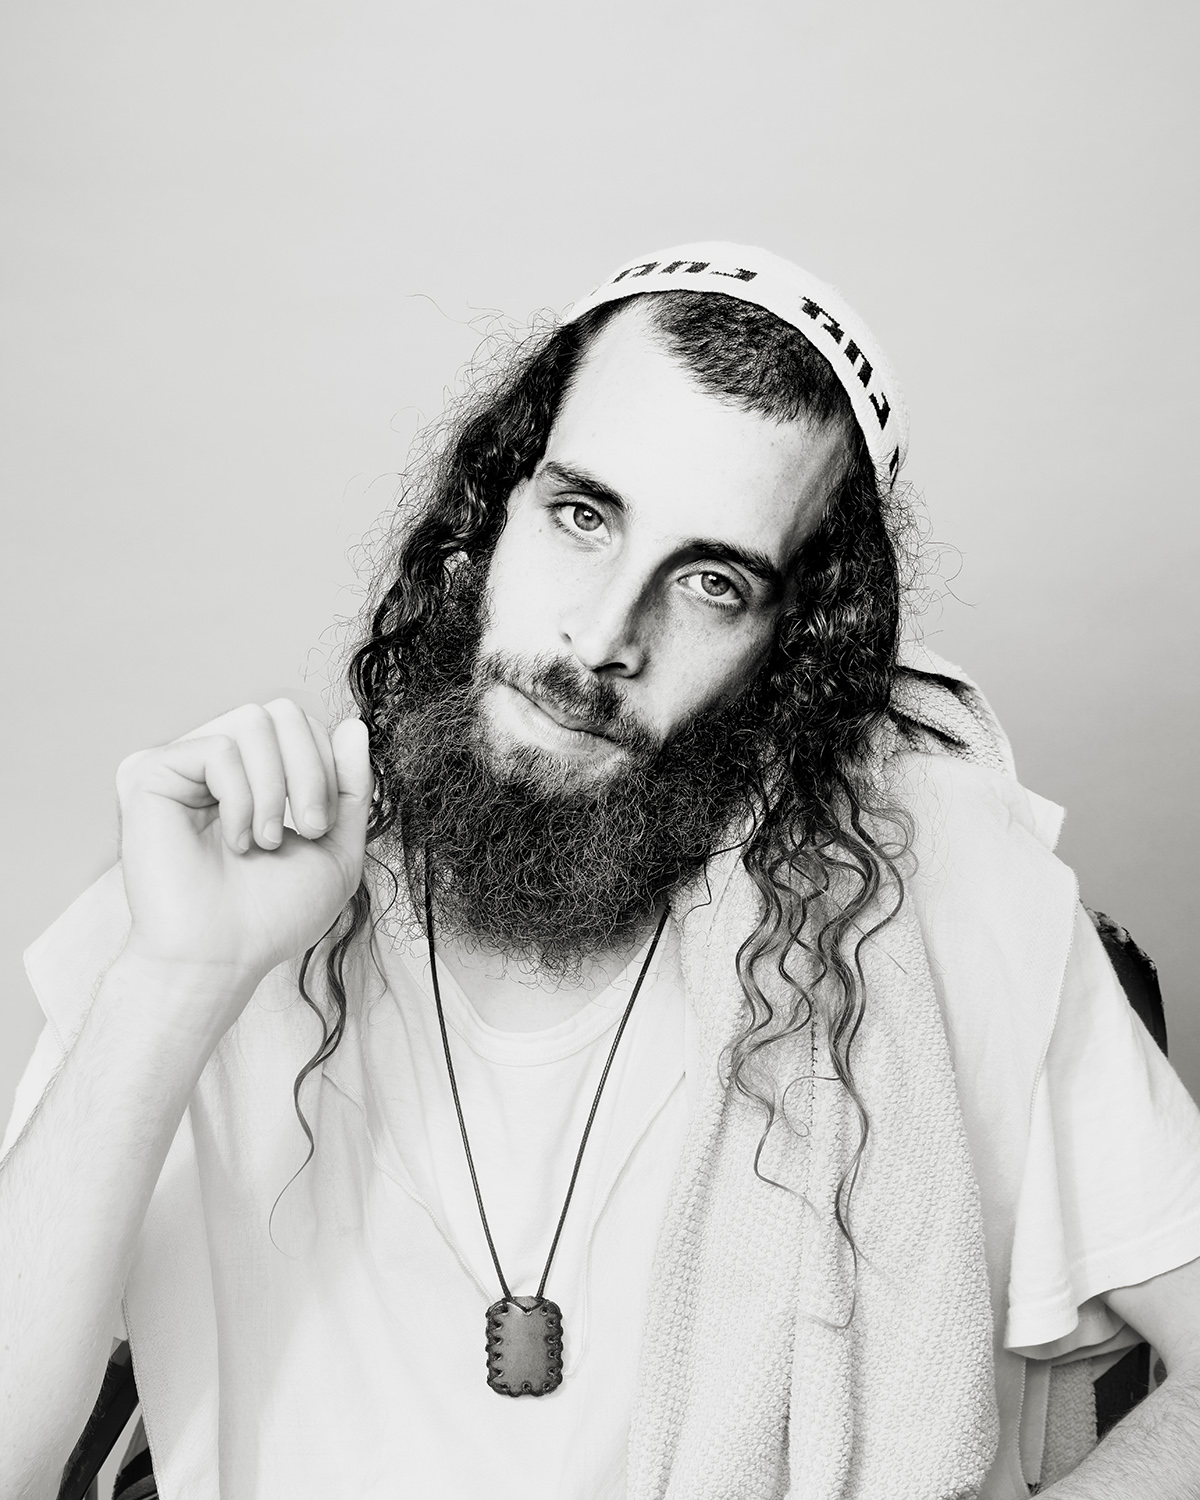 FOLLOWER OF NACHMAN   Harish Israel